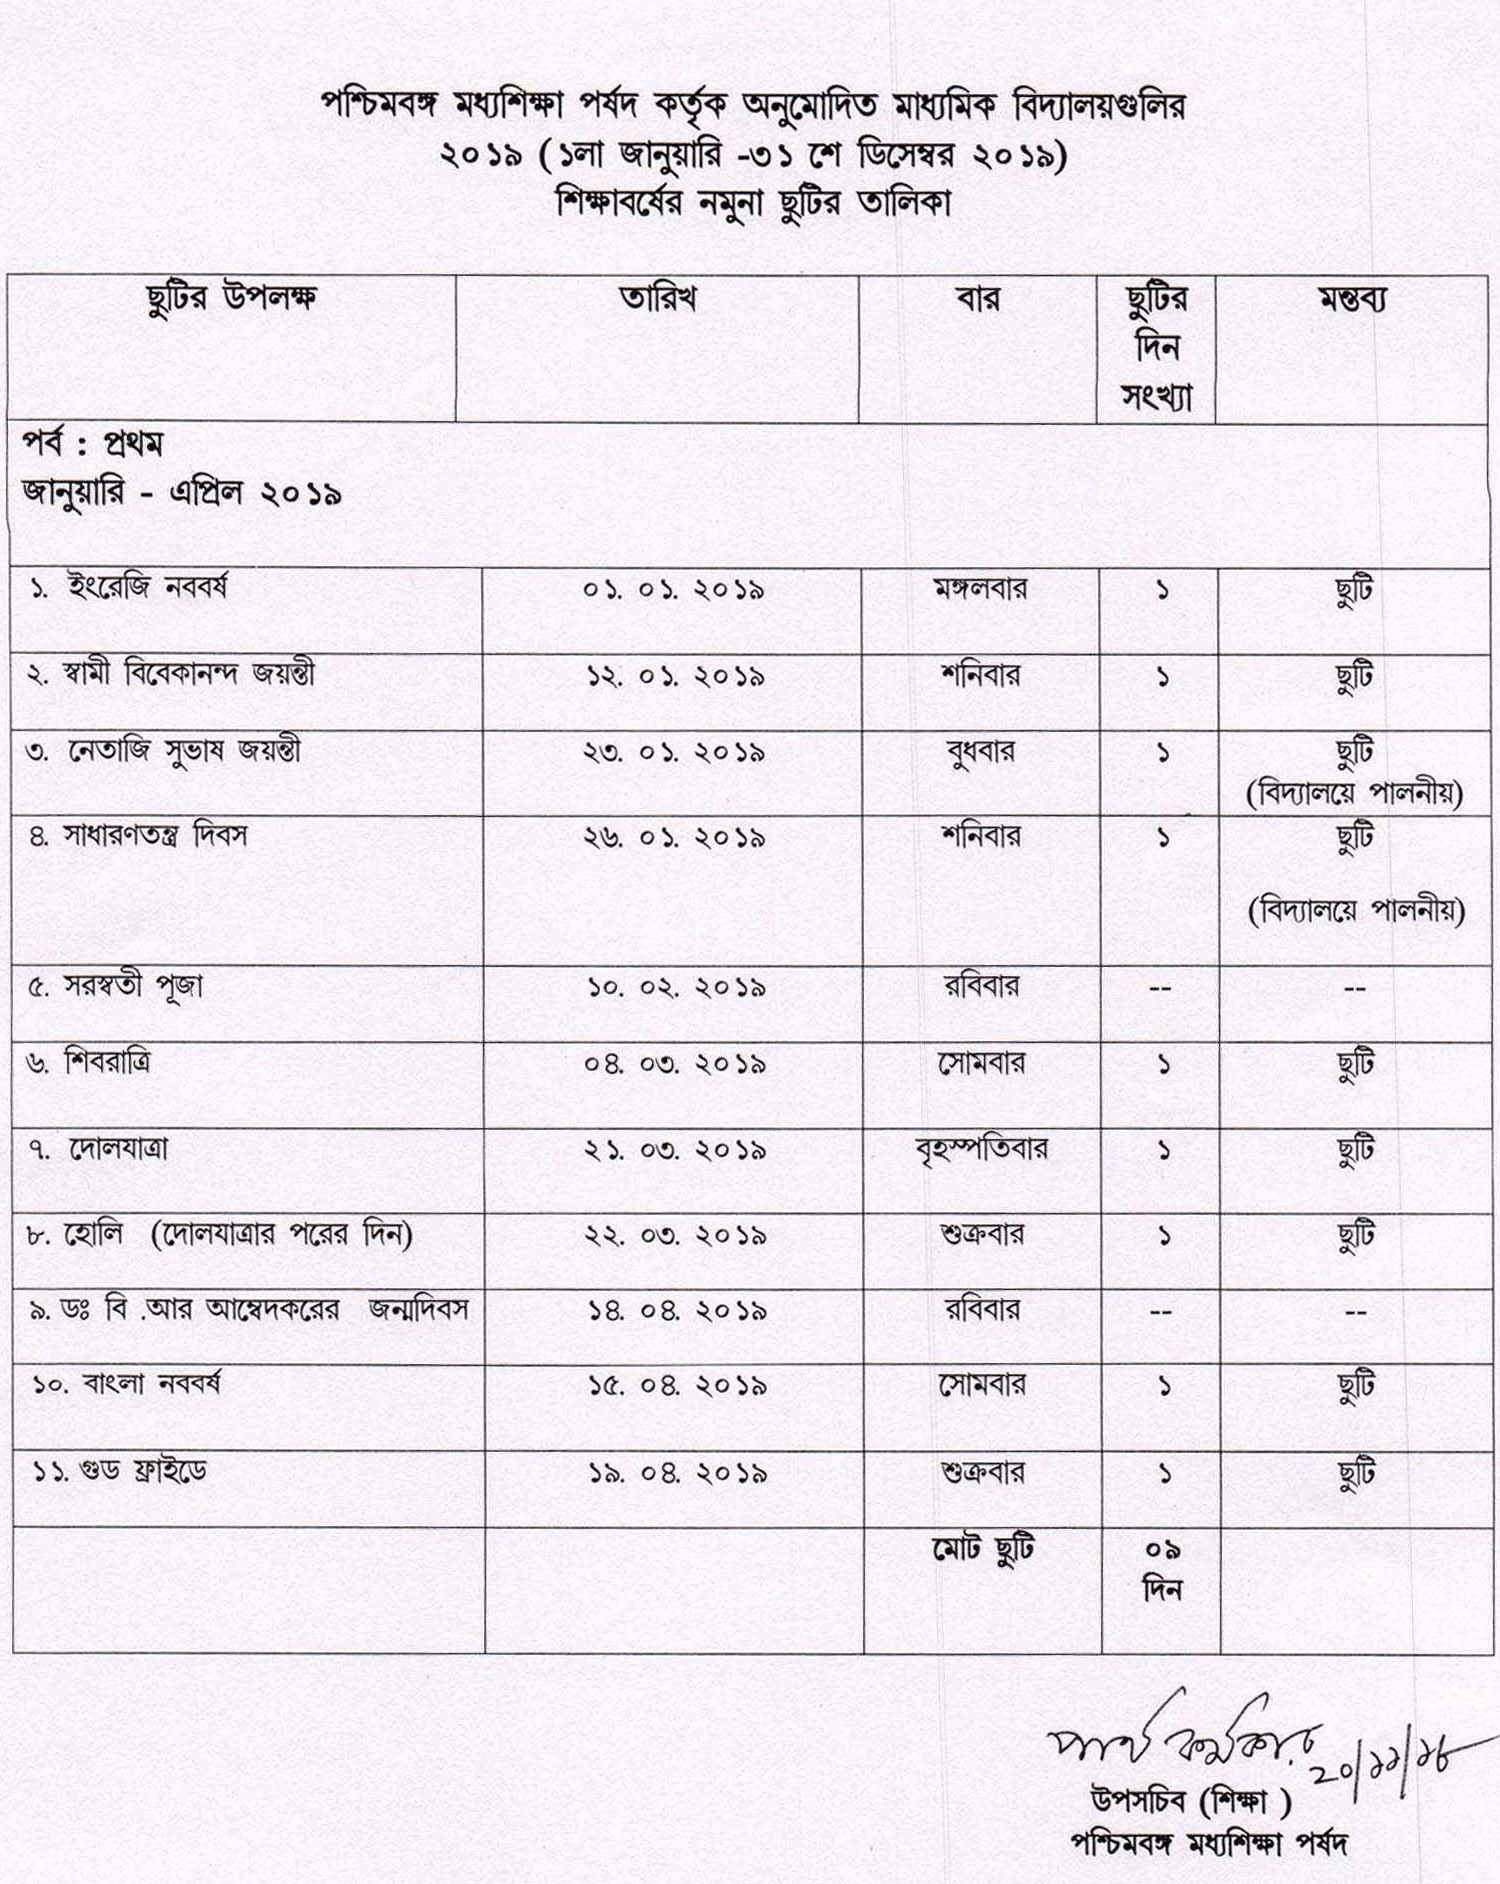 Holiday List Of West Bengal Board Of Secondary Education 2019 | Wbxpress Calendar 2019 List Of Holidays